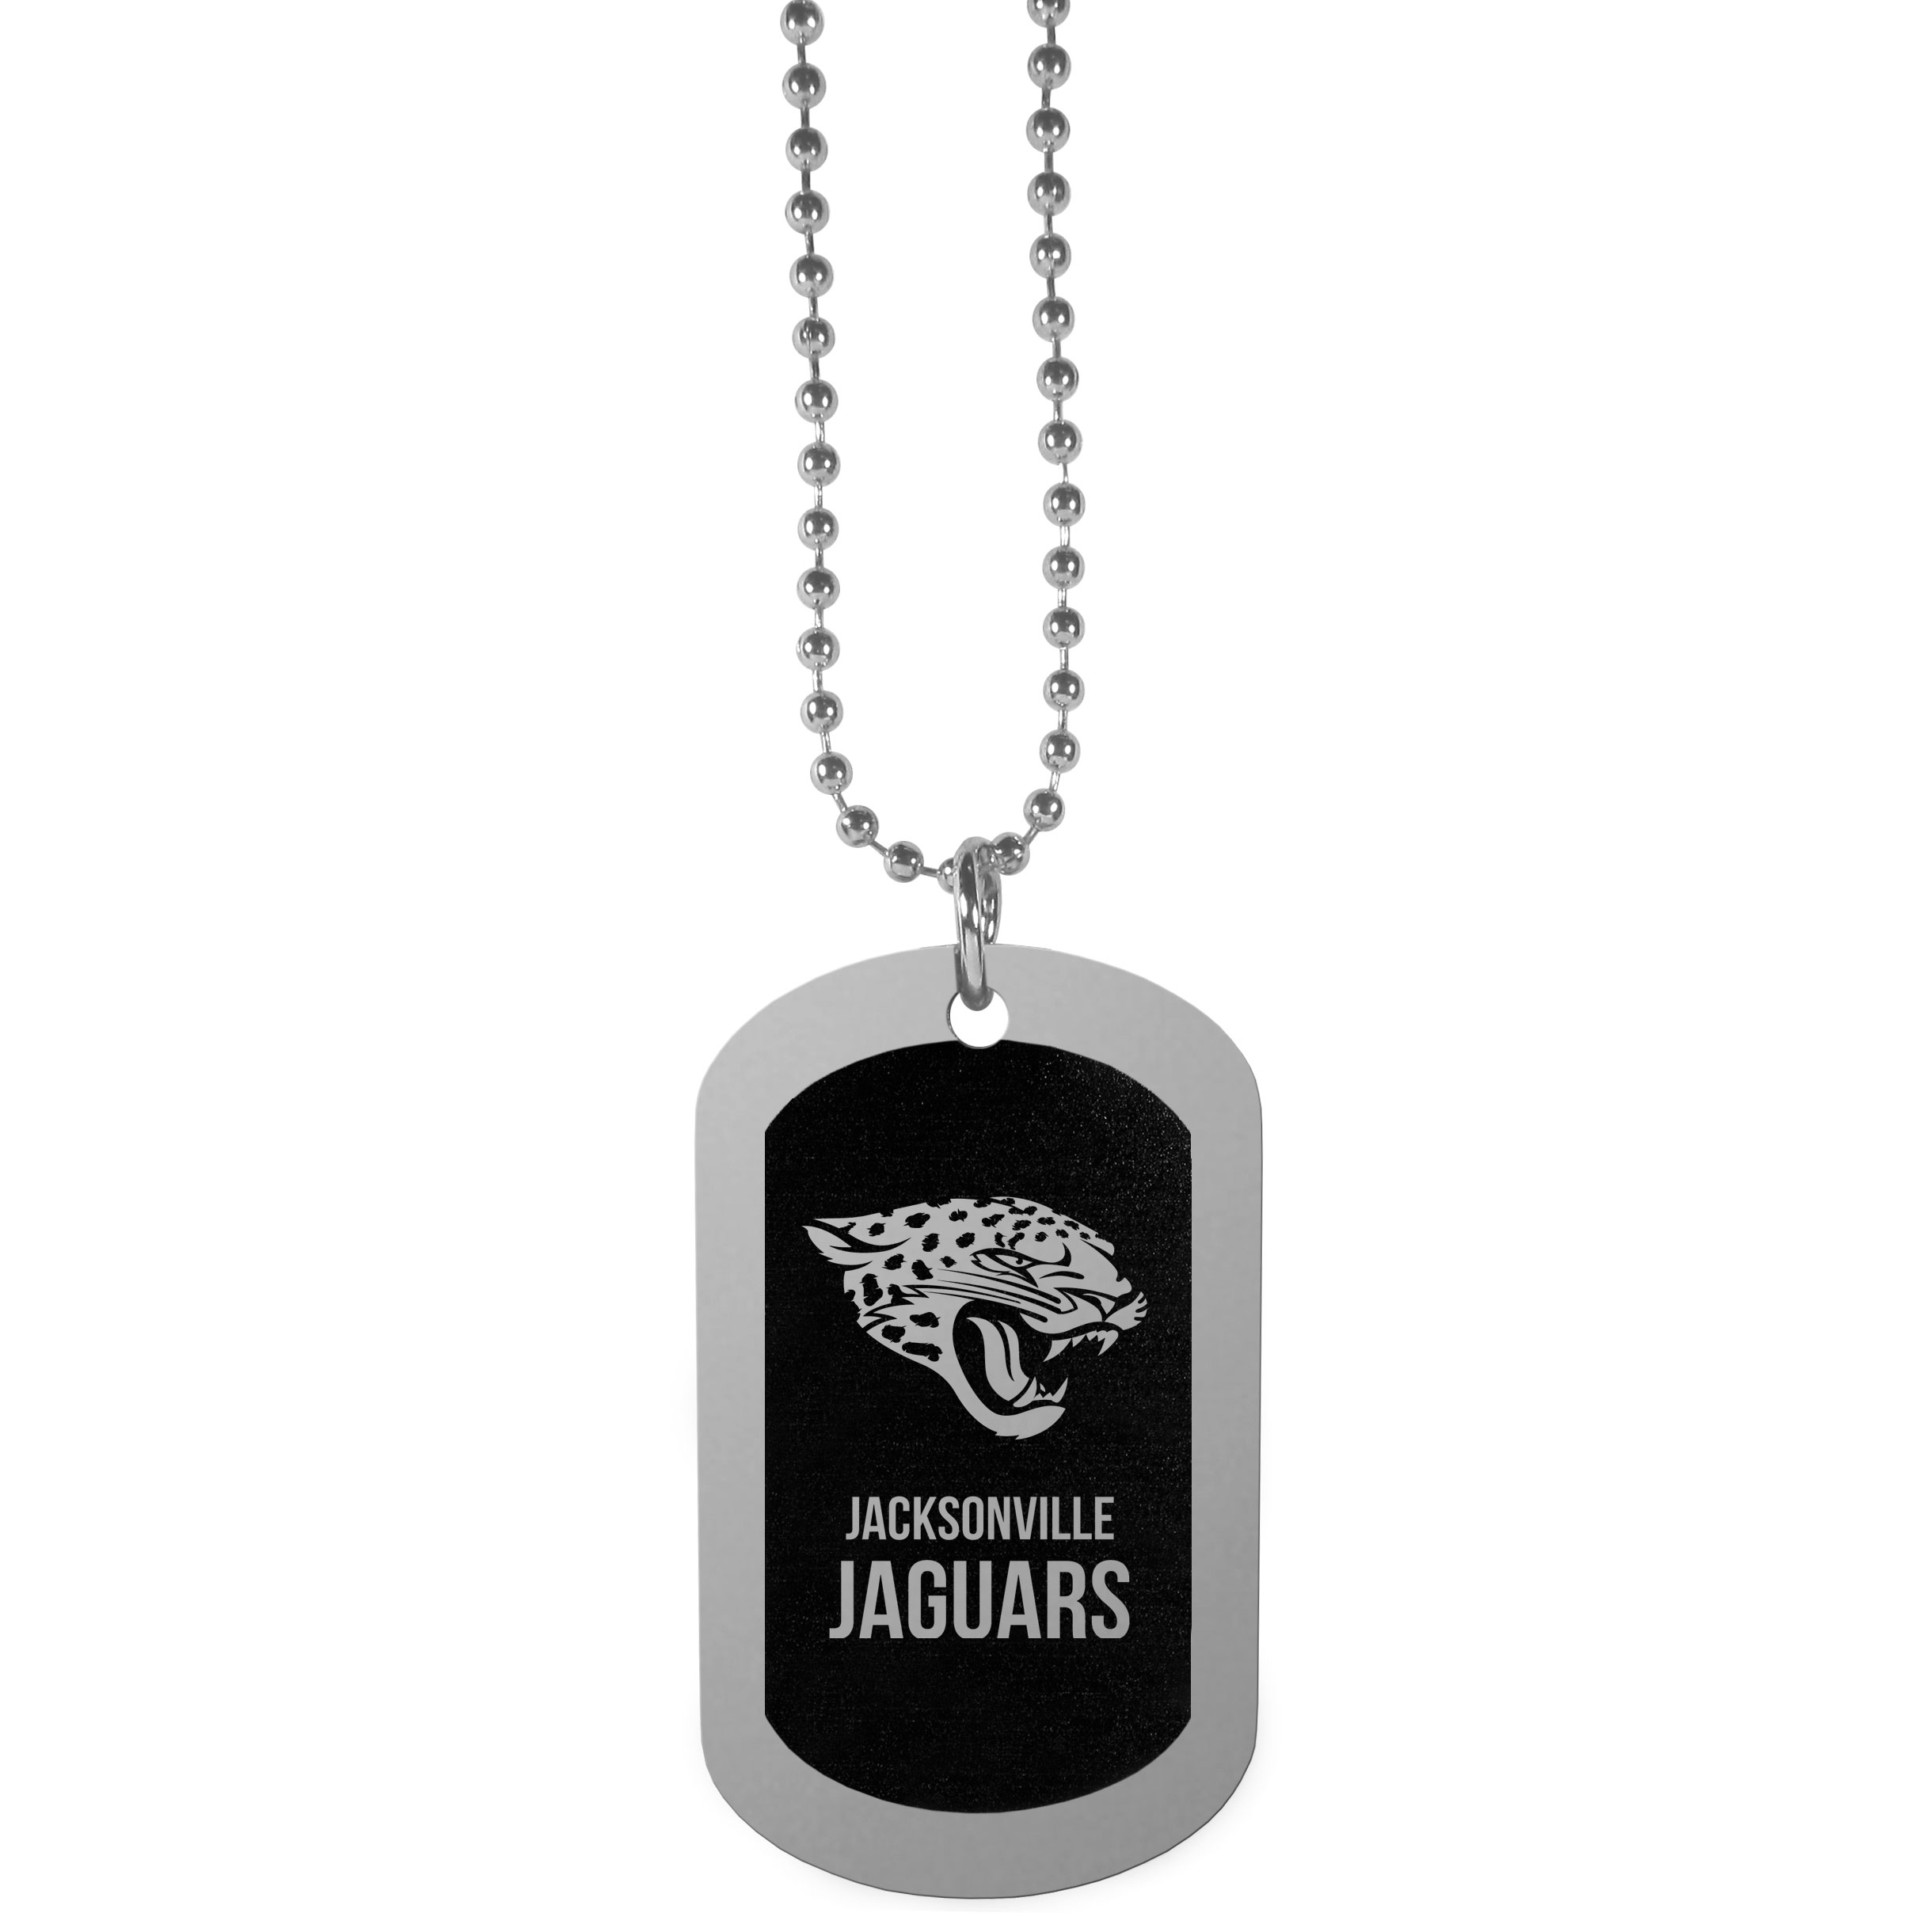 Jacksonville Jaguars Chrome Tag Necklace - Dog tag necklaces are a fashion statement that is here to stay. The sporty version of the classic tag features a black printed over a high polish tag to create a bold and sporty look. The tag comes on a 26 inch ball chain with a ball and joint clasp. Any Jacksonville Jaguars would be proud to wear this attractive fashion accessory.